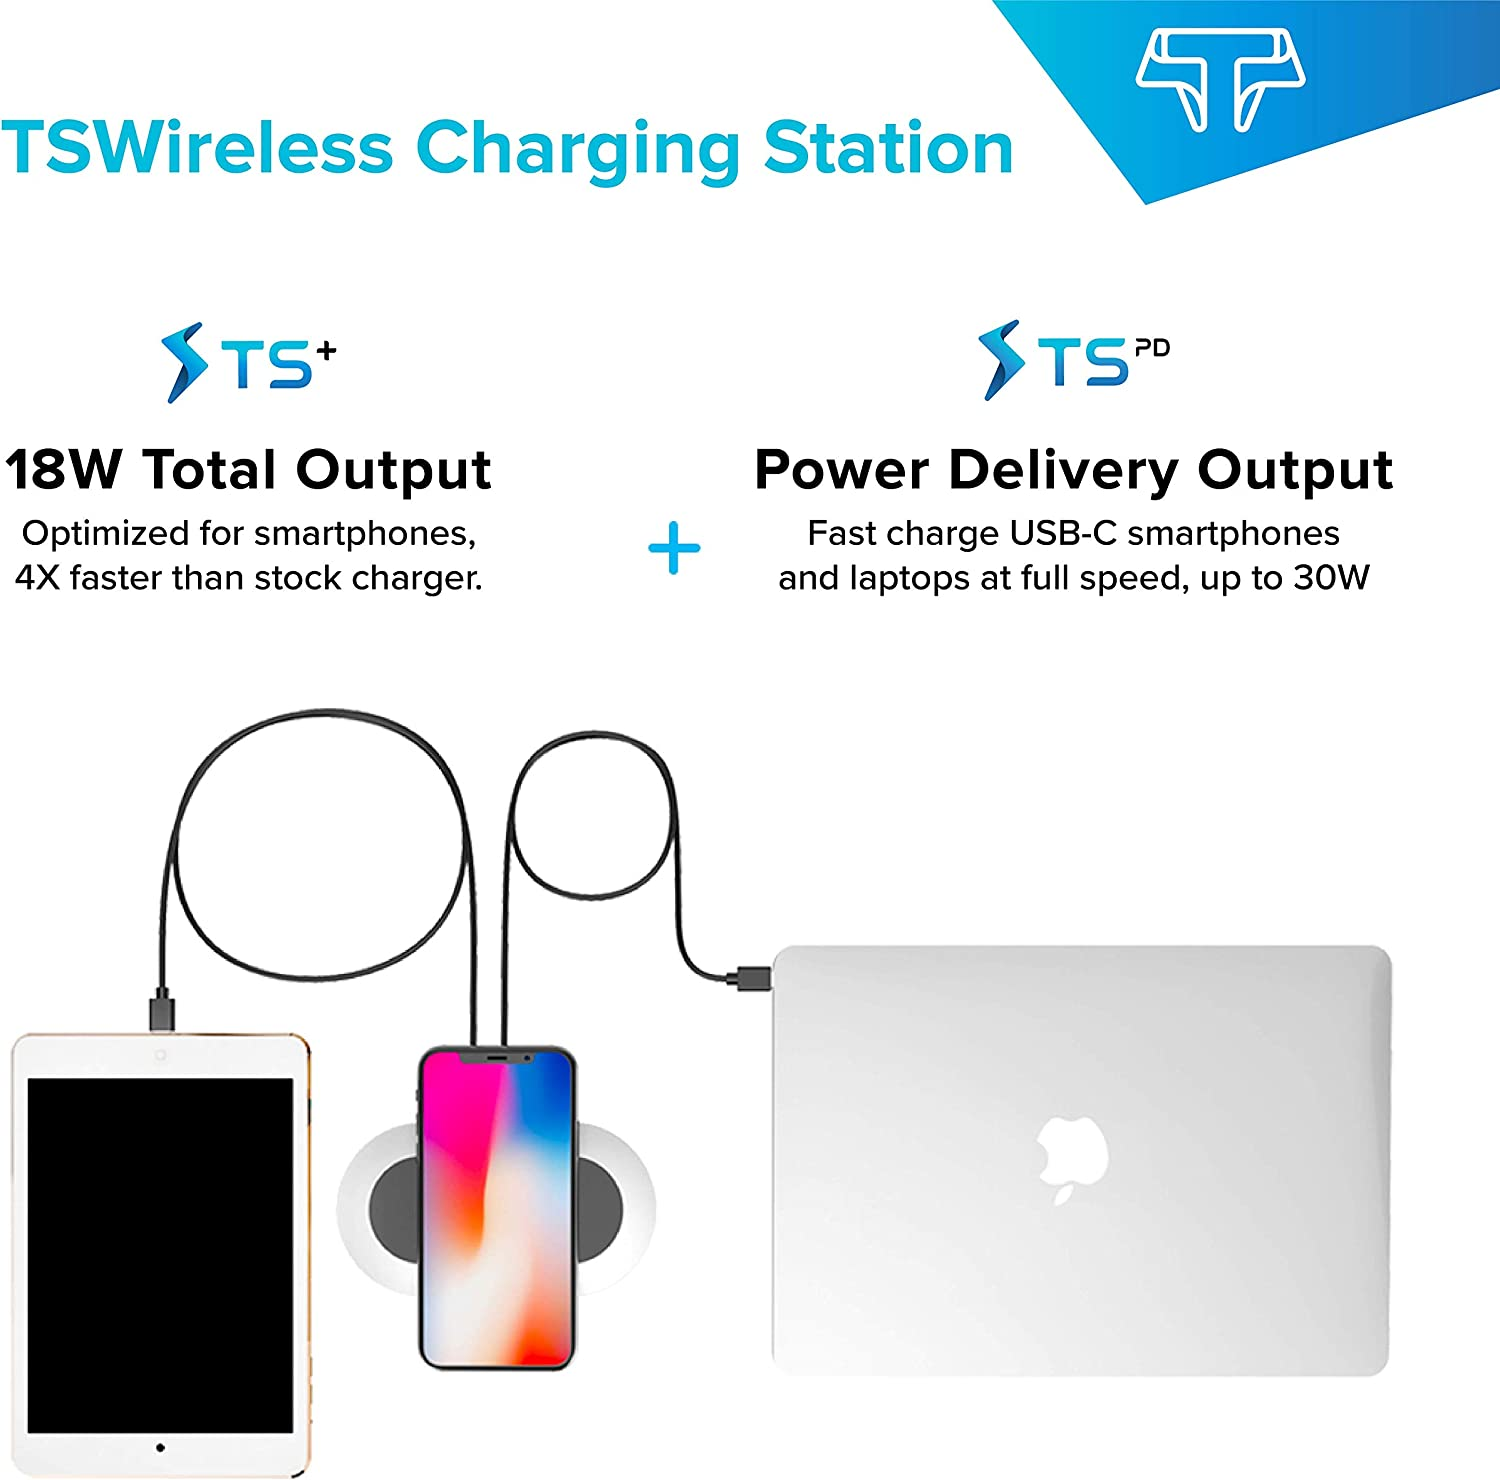 Compatible with Samsung S7 S8 S9 S10 Note iPad iPhone 11 8 X XR XS Techsmarter Qi Wireless Fast Charger Pad with 30W Power Delivery USB C Port and 18W Fast Charge USB Ports MacBook LG G6 V30 V40